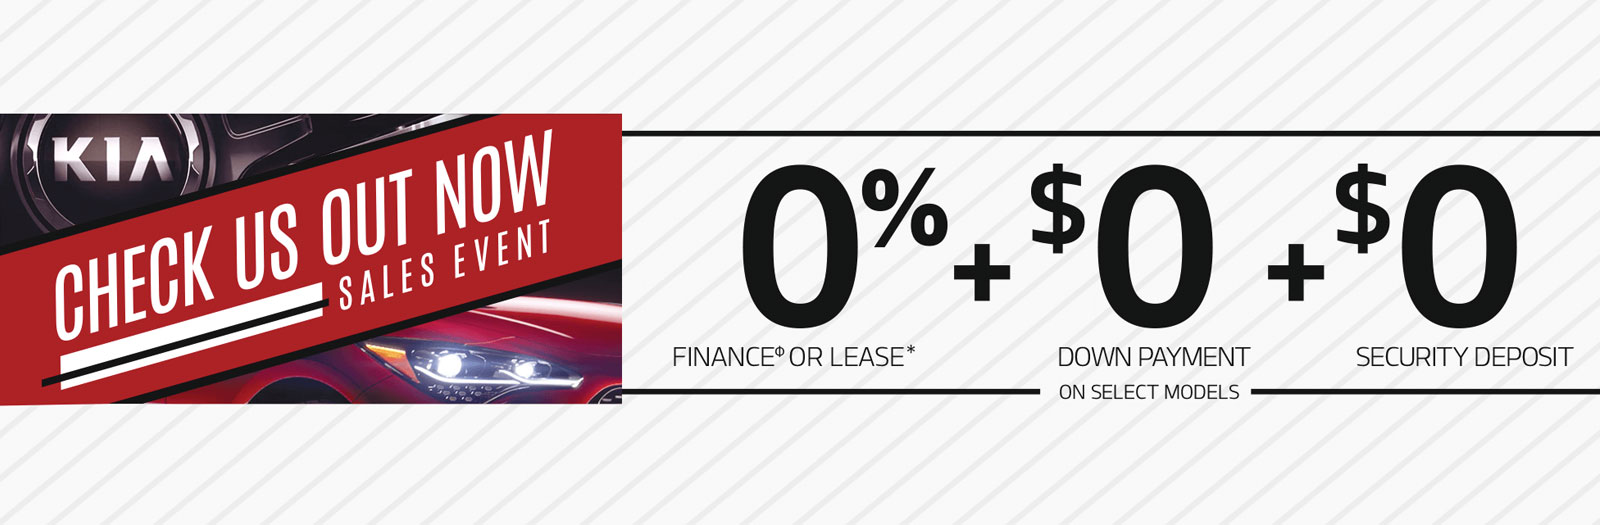 Check Us Out Now Sales Event Kia of North Bay